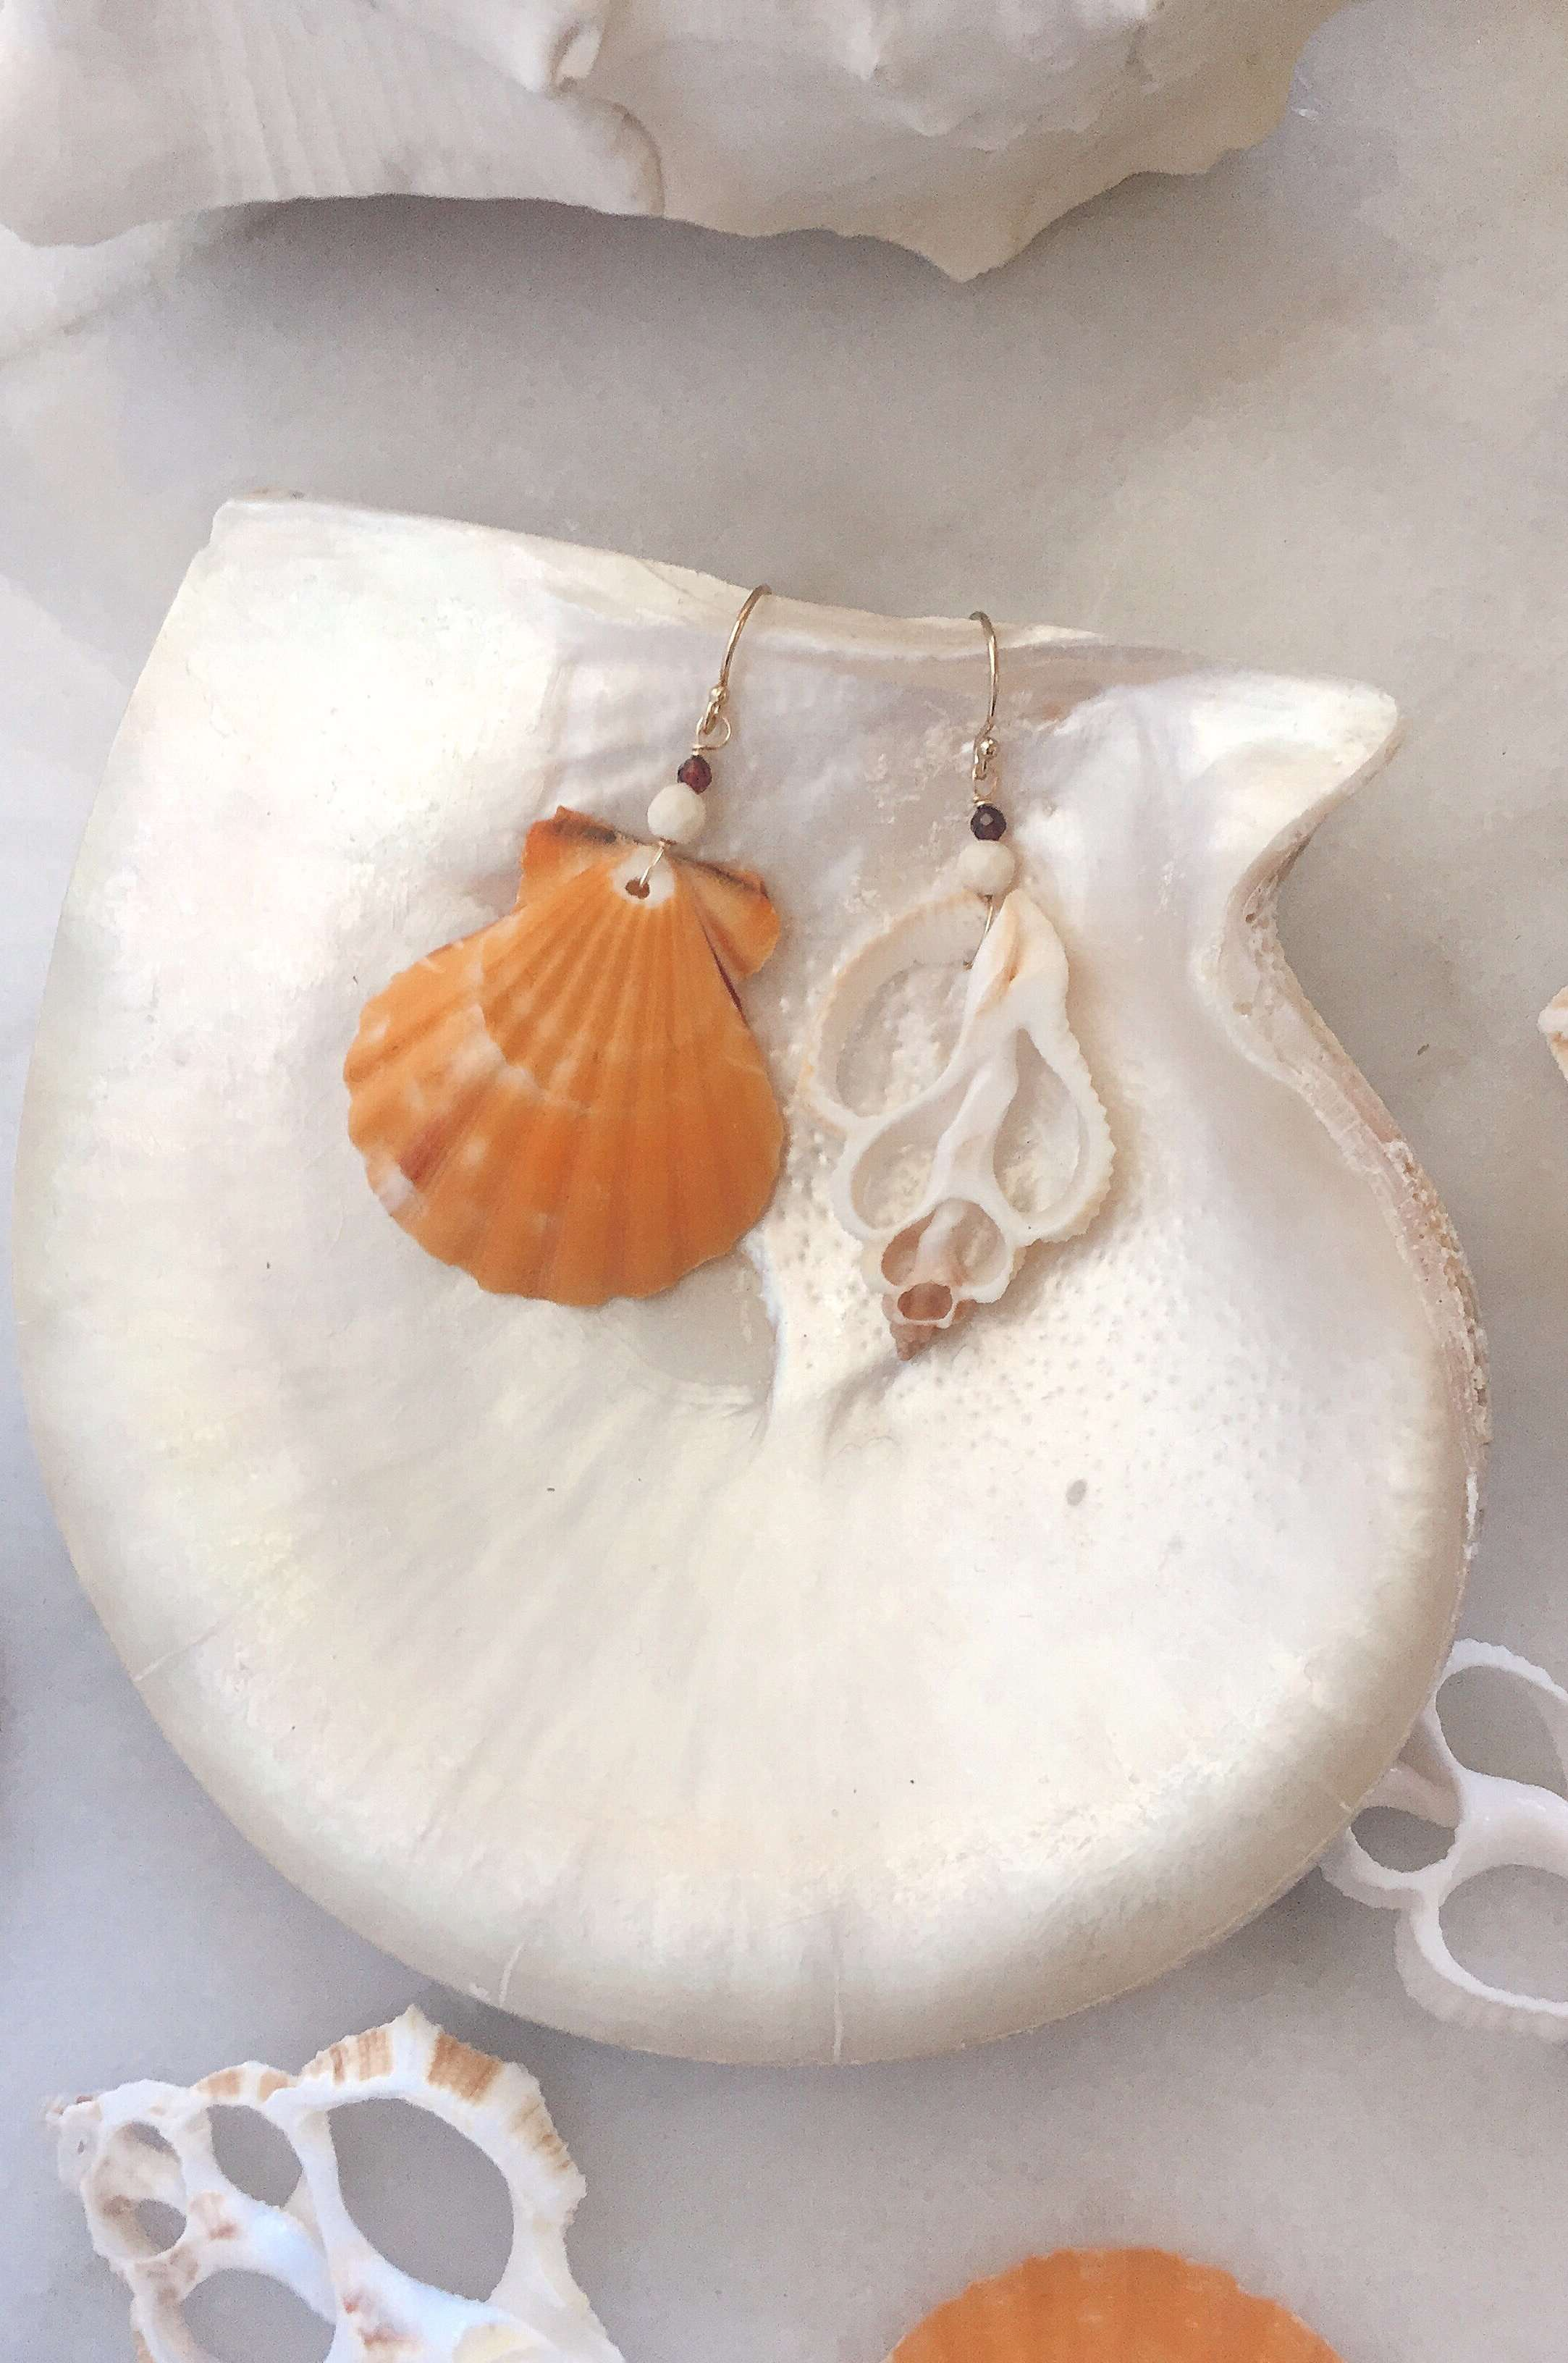 Gold Fill Castaway Earrings, Earrings with Orange Scallop & White Slice by Lunarsea Designs